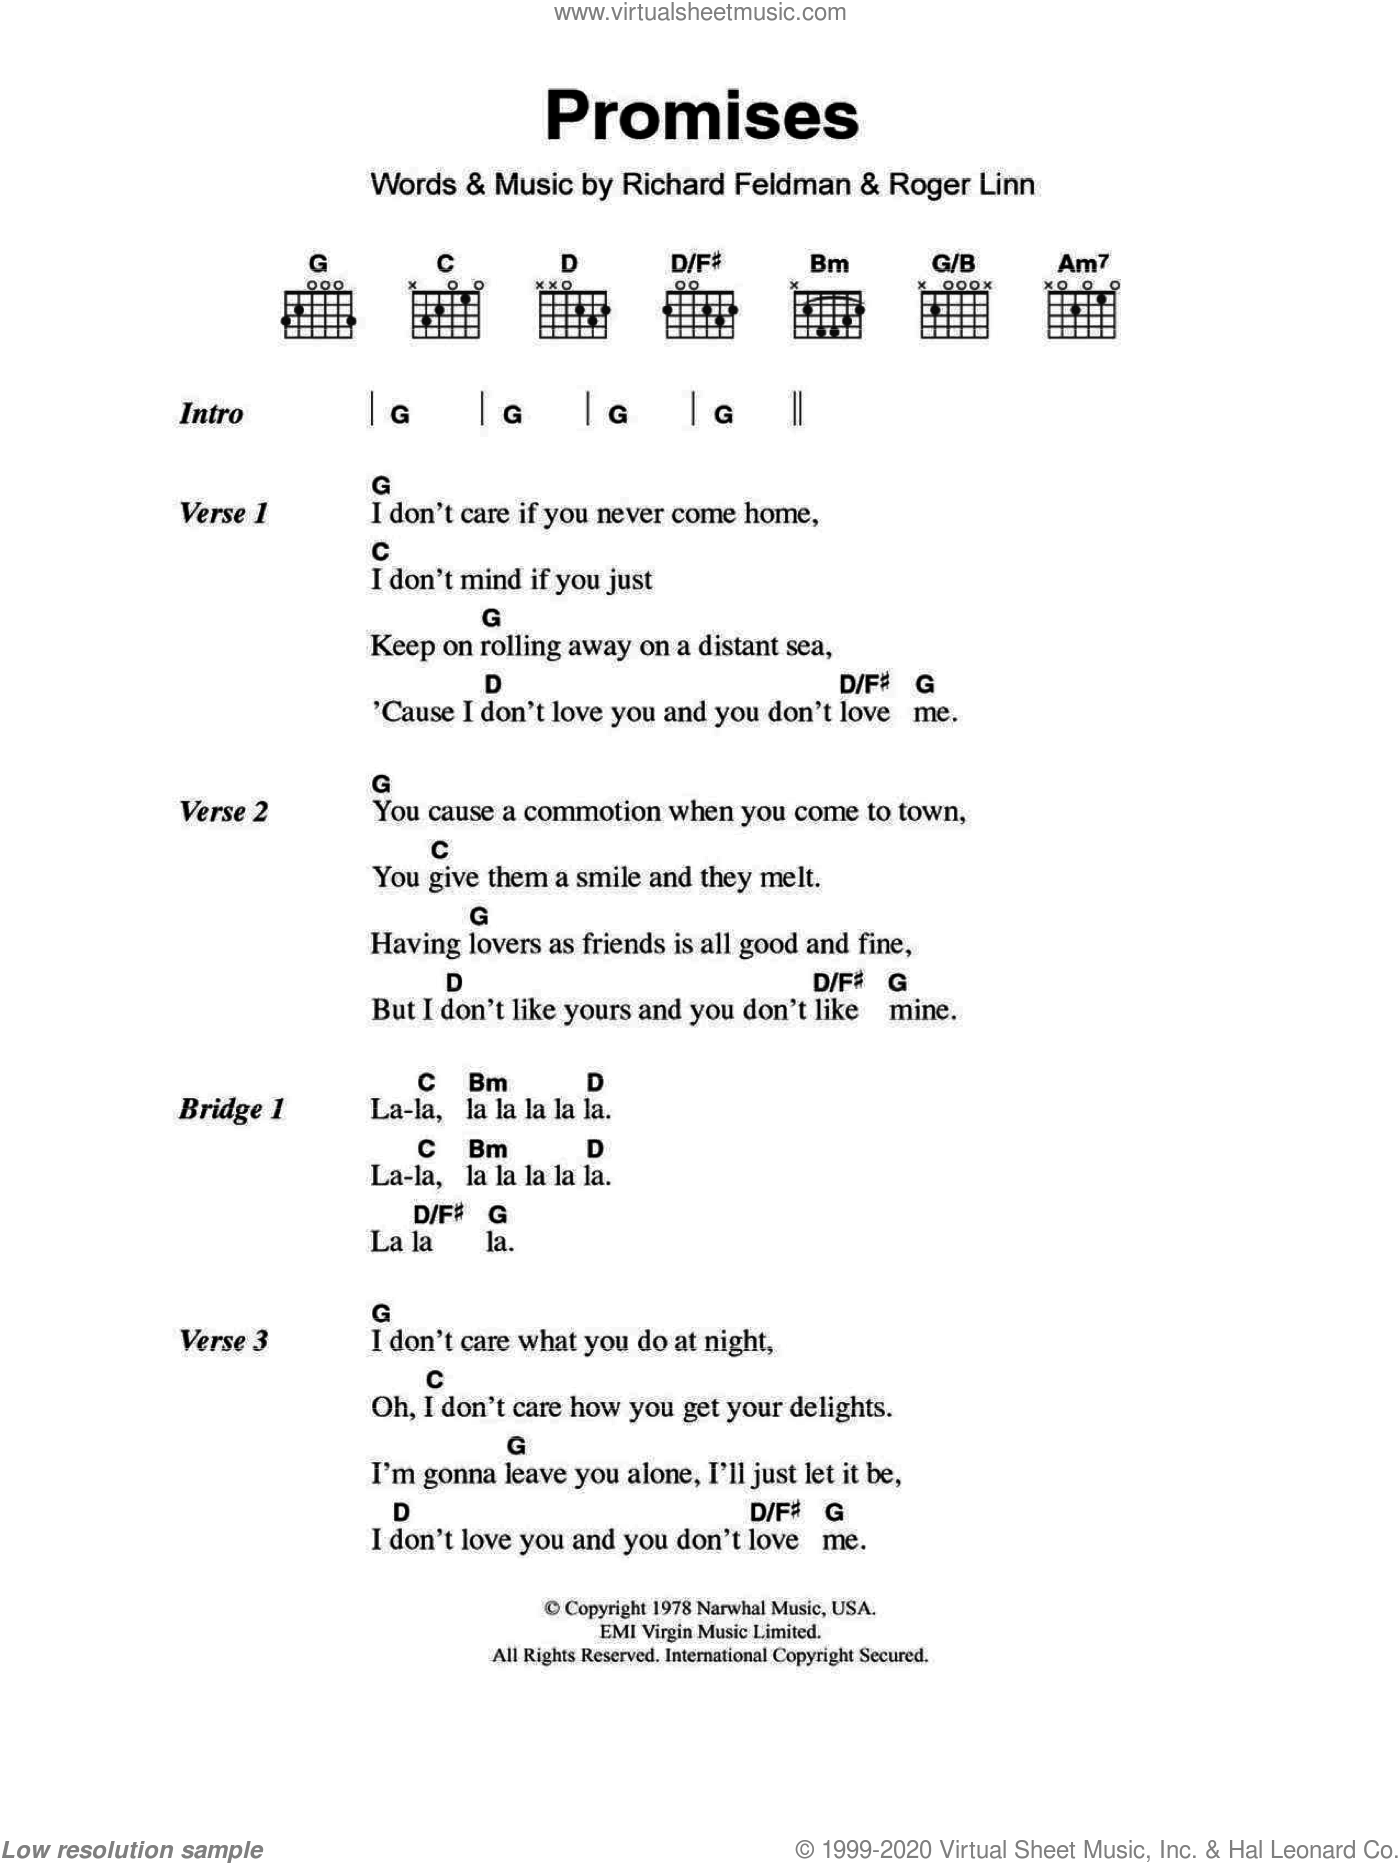 Promises sheet music for guitar (chords) by Roger Linn